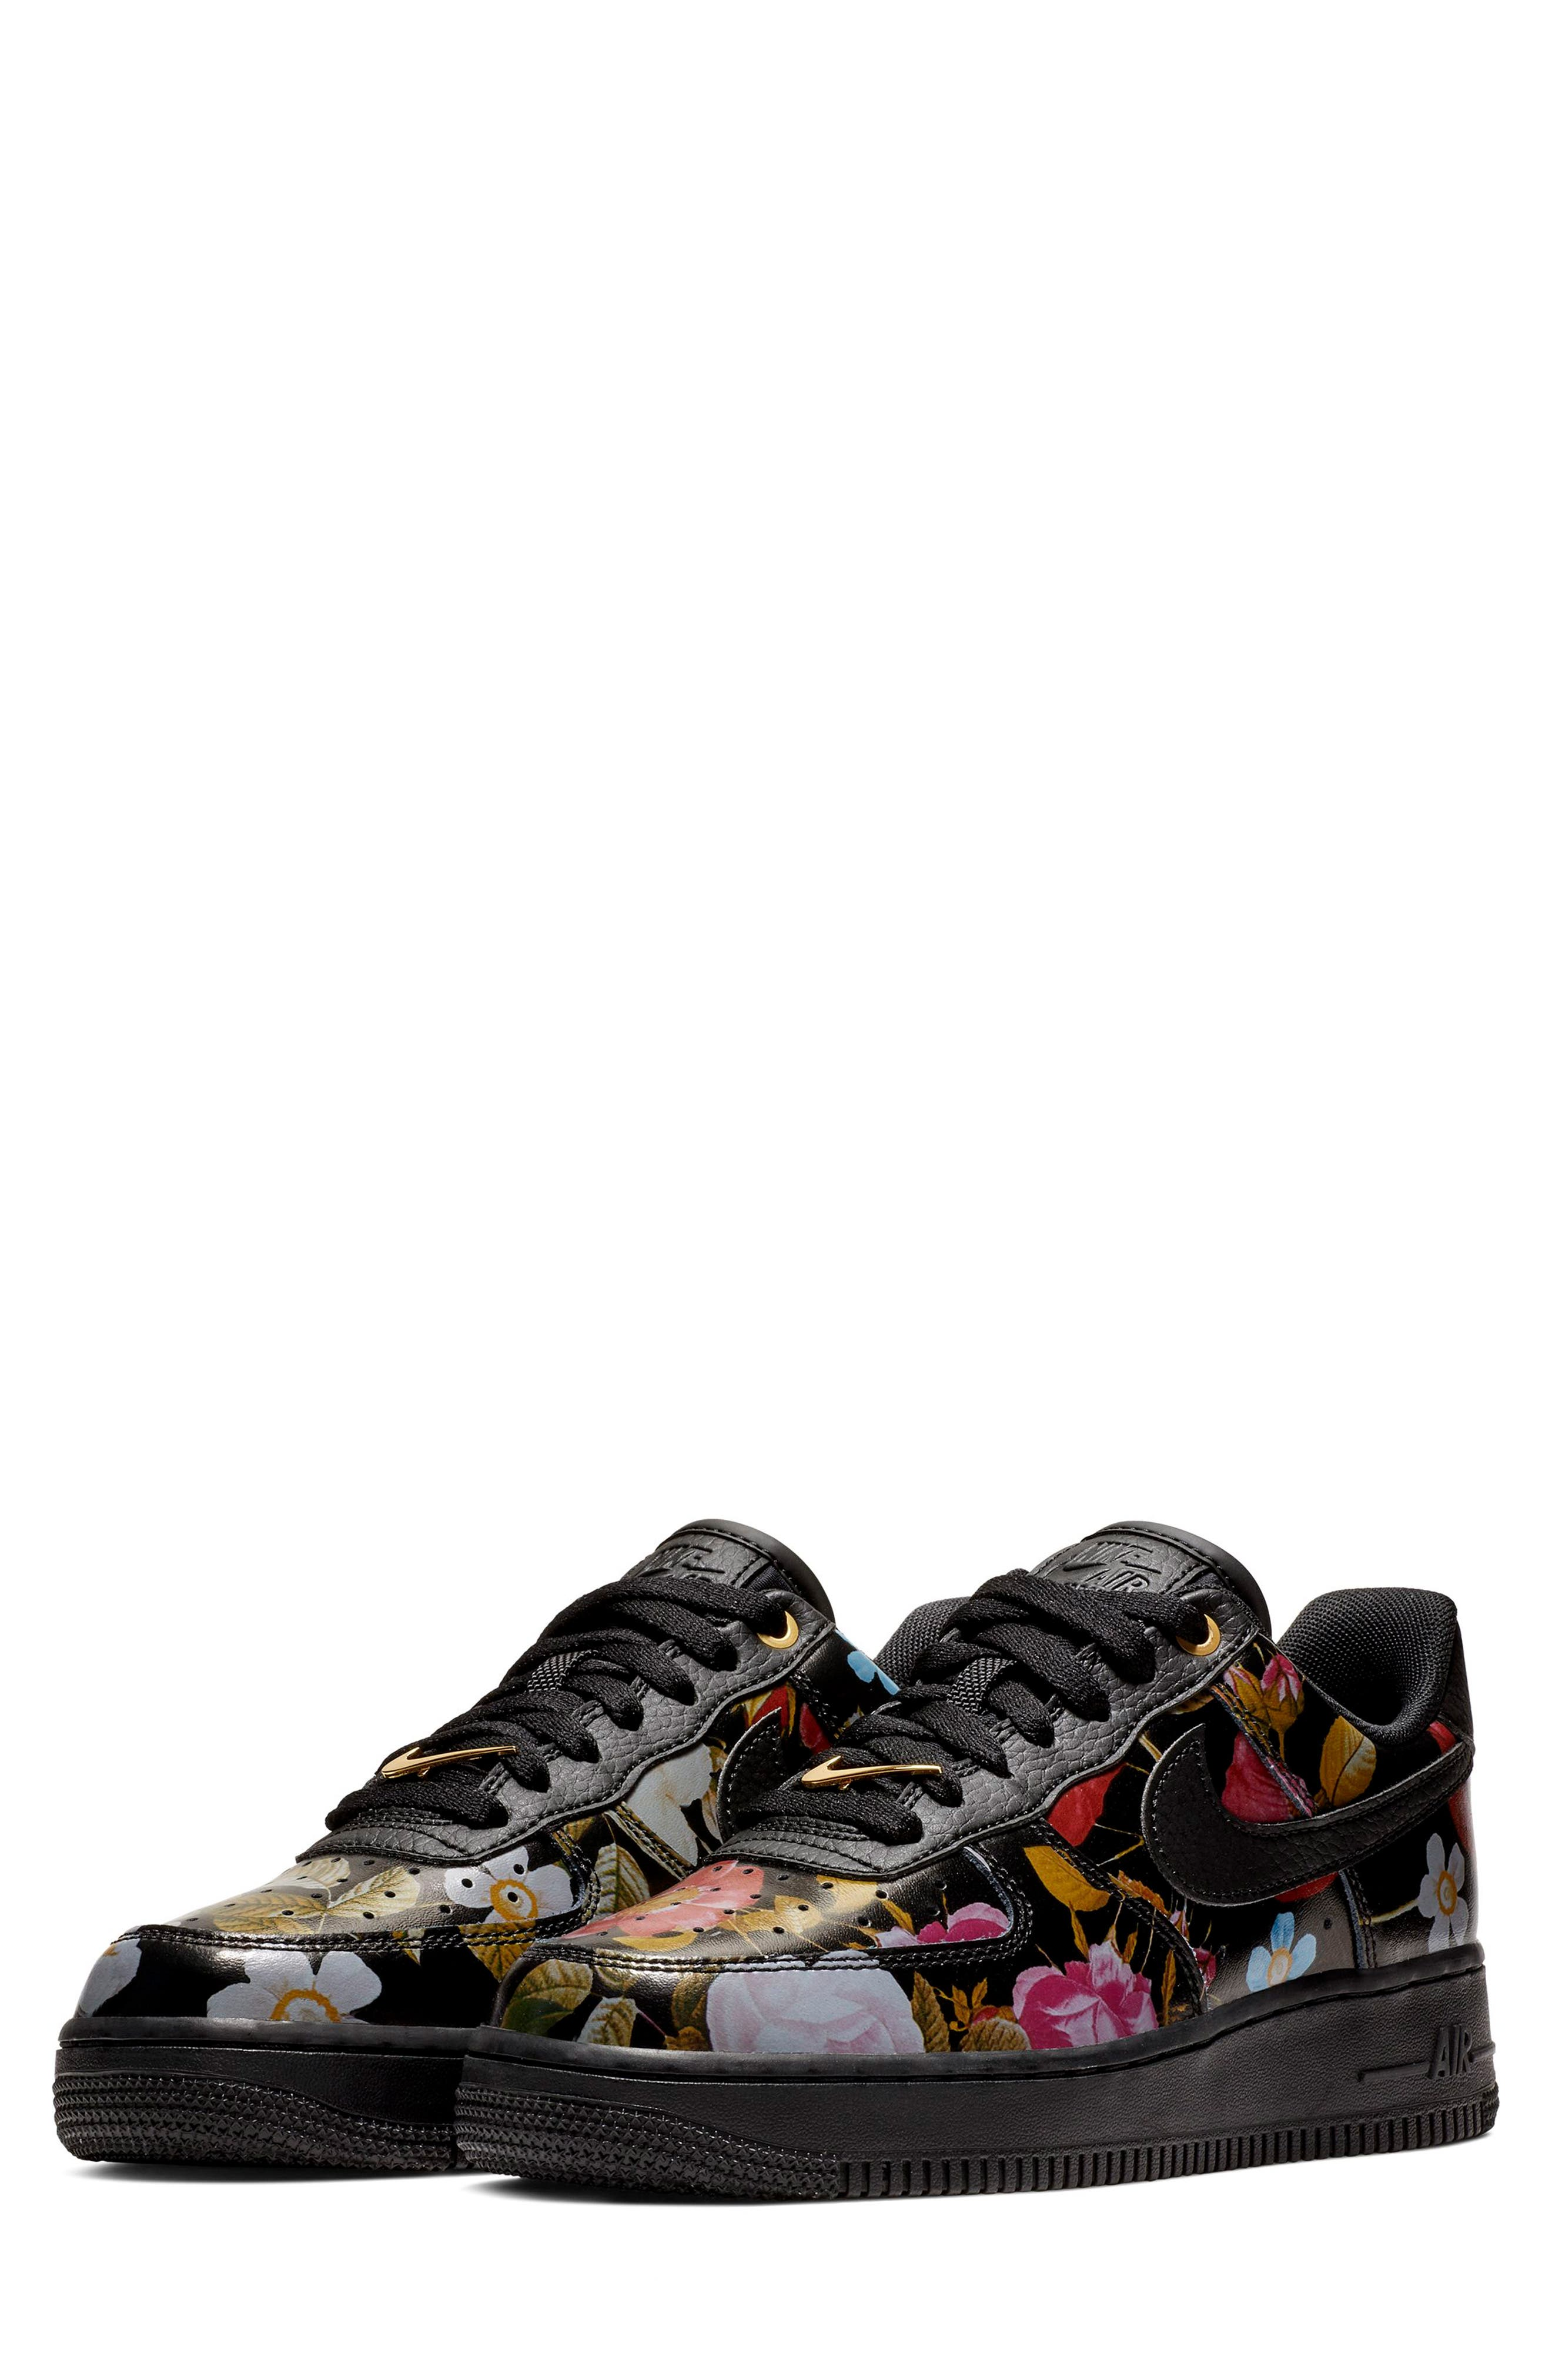 NIKE Air Force 1 '07 LXX Sneaker, Main, color, BLACK/ BLACK/ METALLIC GOLD